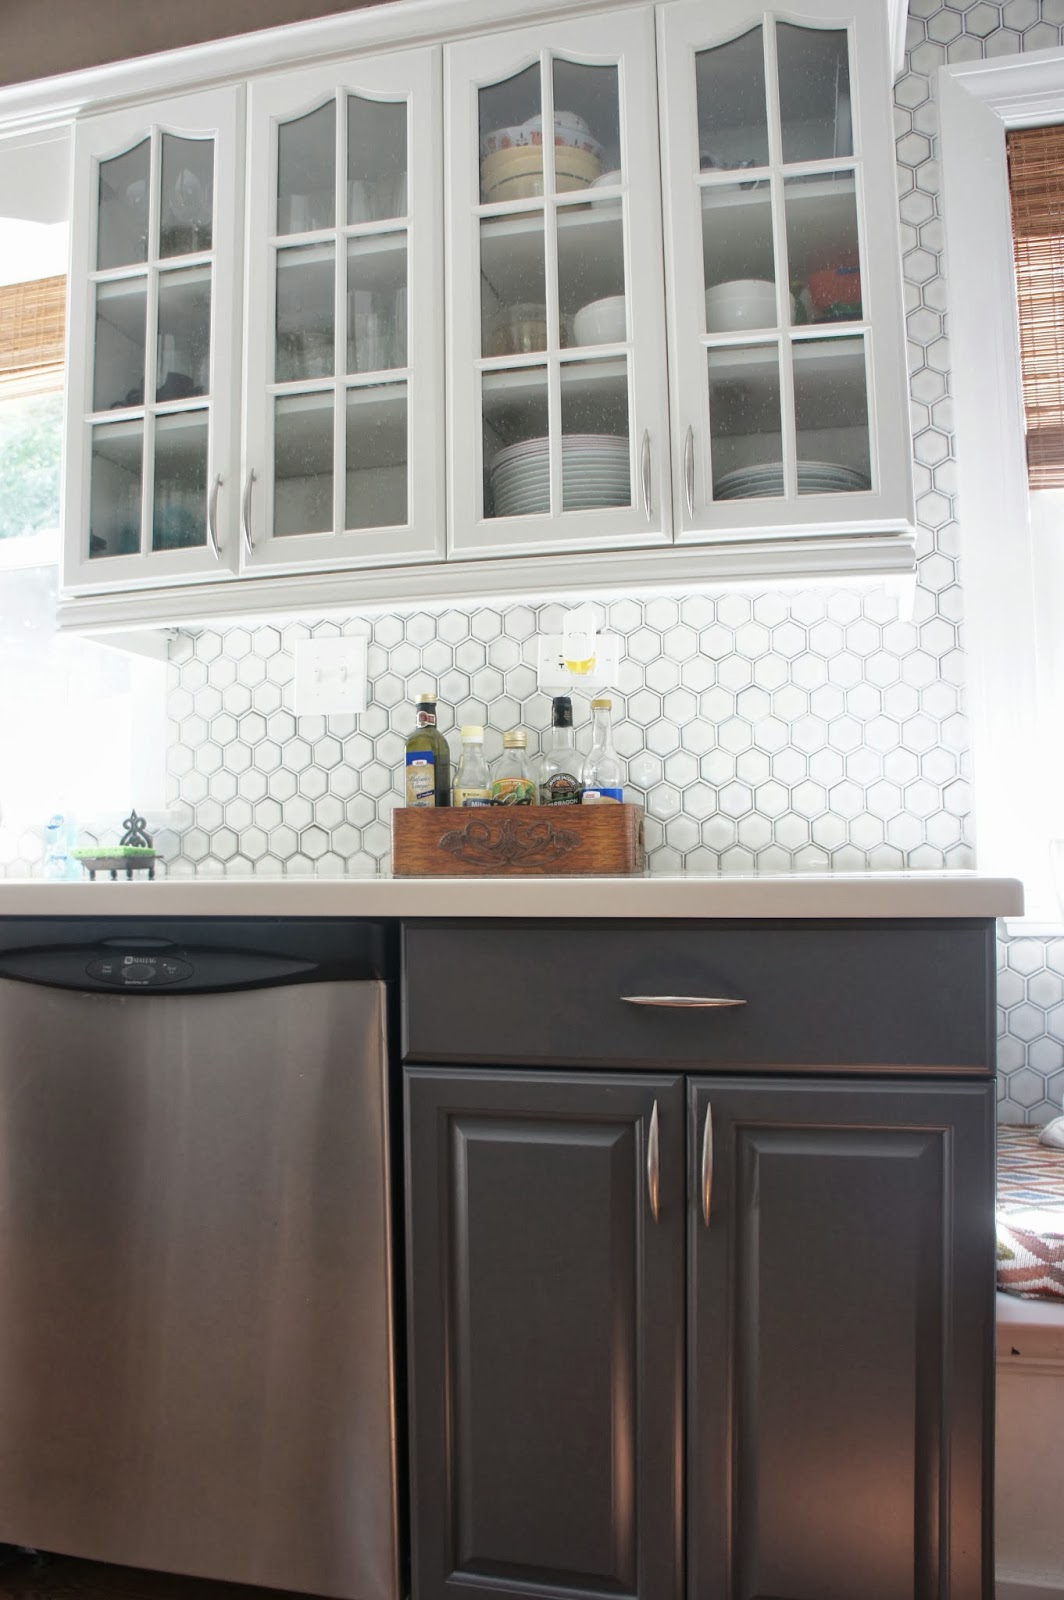 Gray and white kitchens are trending and beautiful! Check out a few of